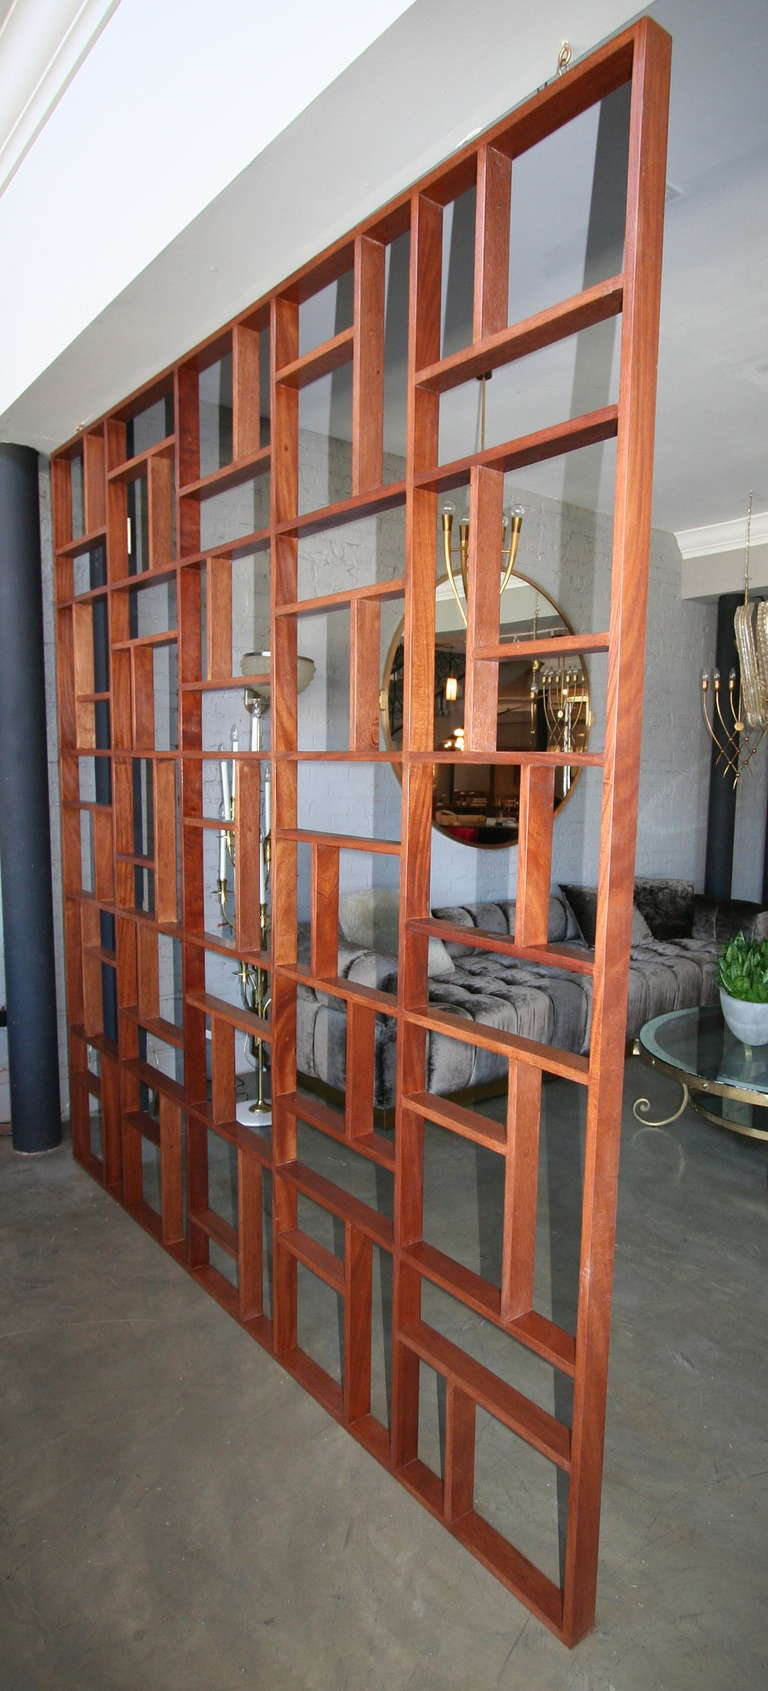 Mahogany Custom Midcentury Style Geometric Wood Room Divider by Adesso Imports For Sale